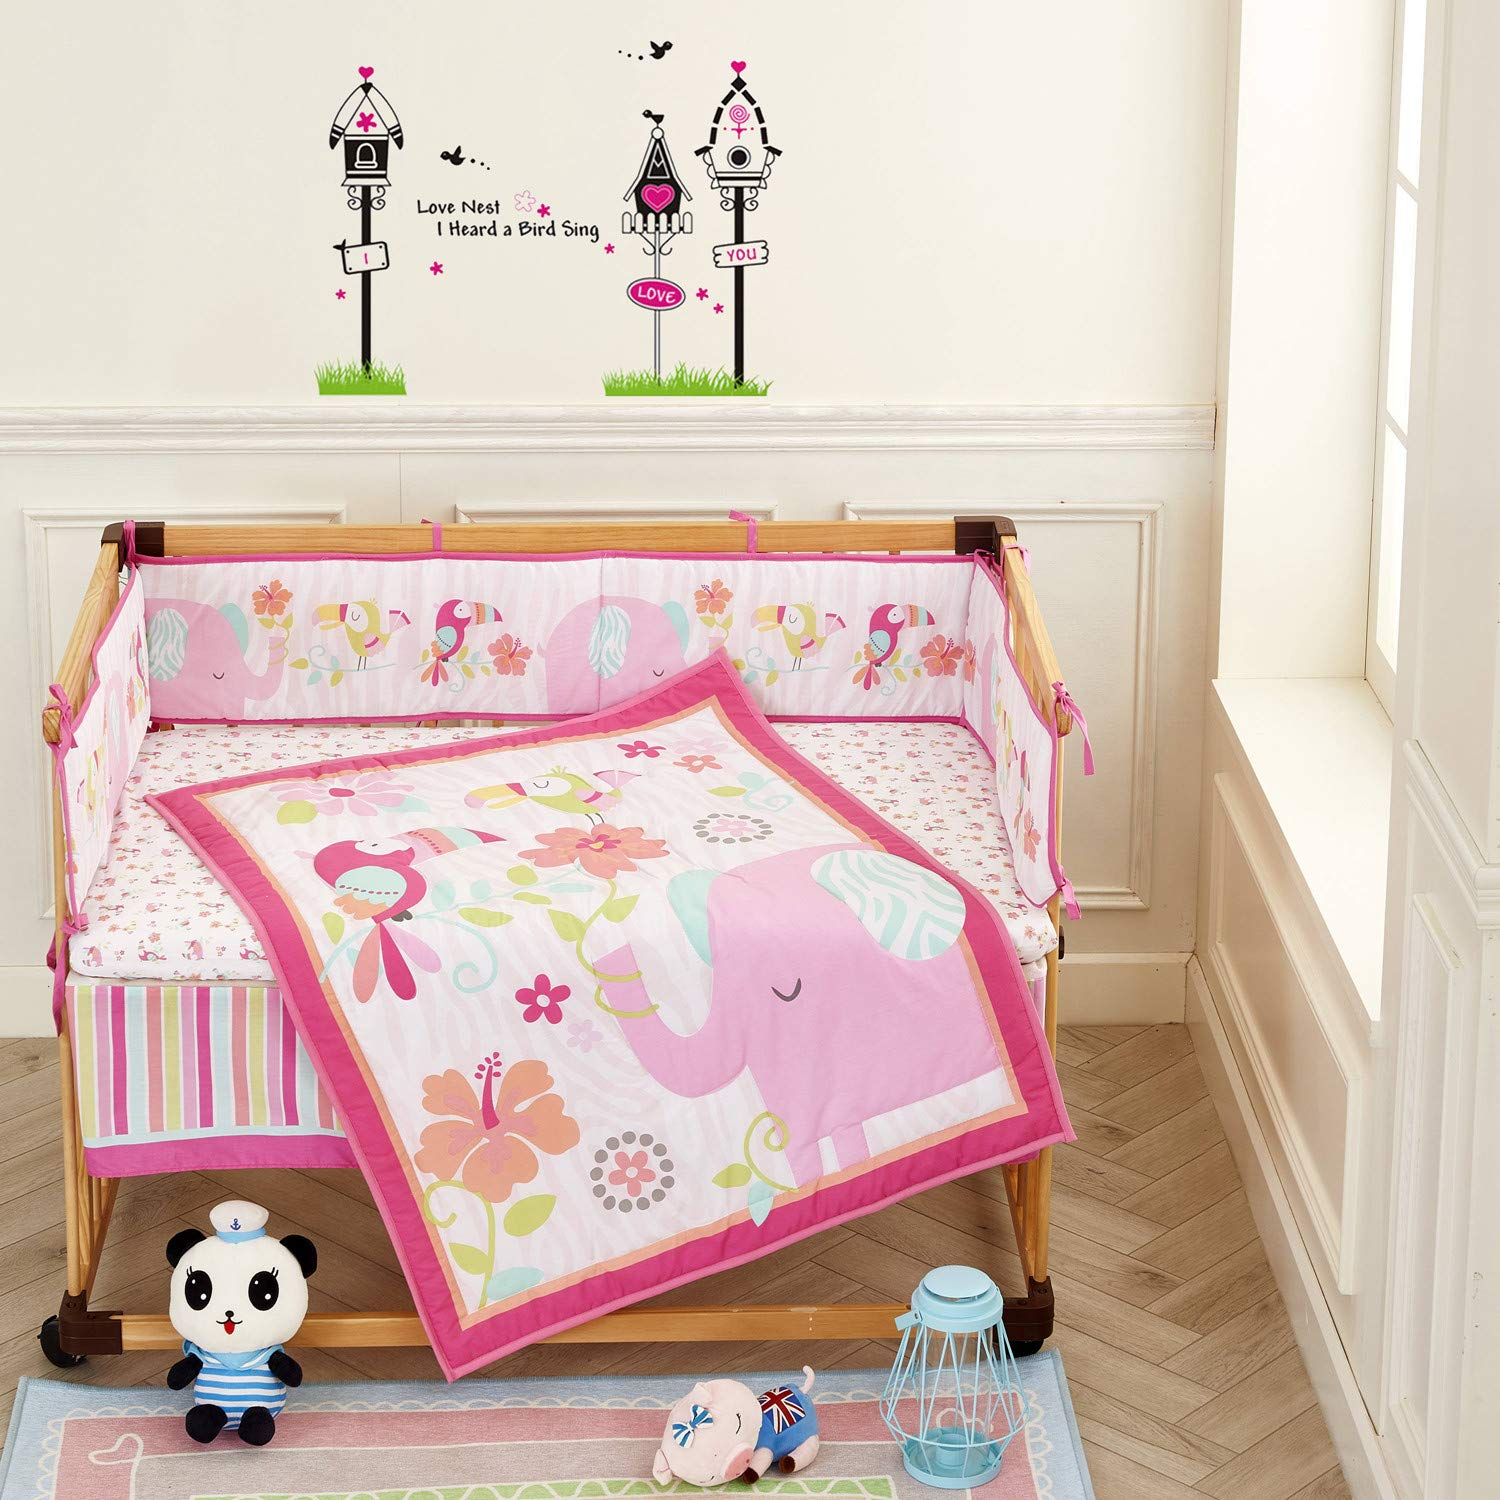 Wowelife Elephant Baby Bedding Sets for Girls 7 Piece Elephant Crib Set Cotton with Bumpers(Pink Elephant-7 Piece)